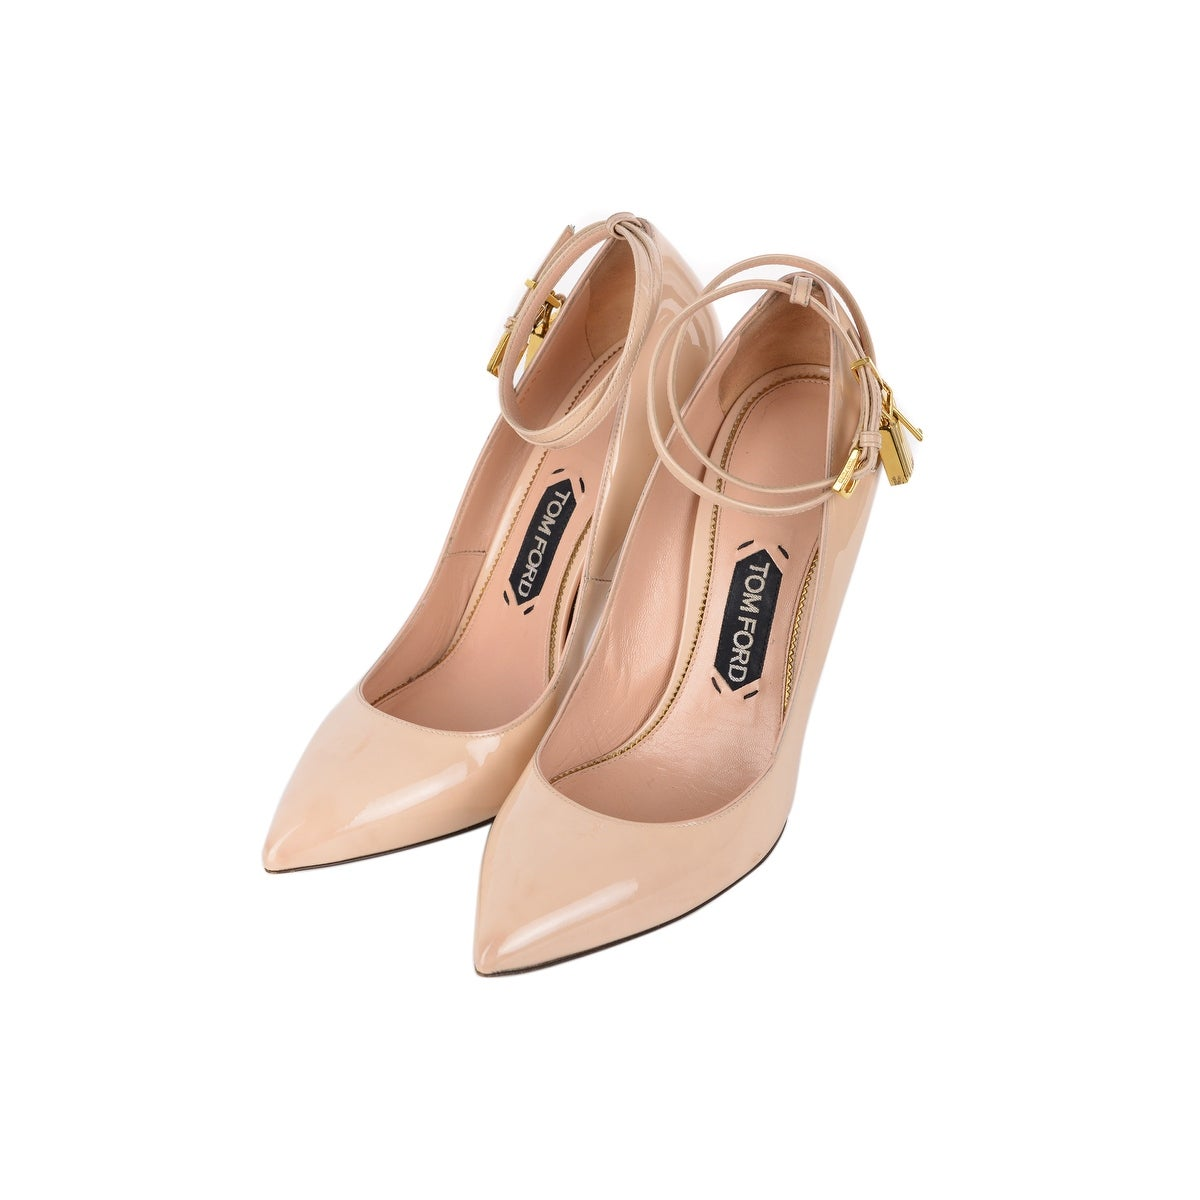 2e109c6ebf5 Shop Tom Ford Womens Blush Lacquered Leather Padlock Pumps - Free Shipping  Today - Overstock - 27215909